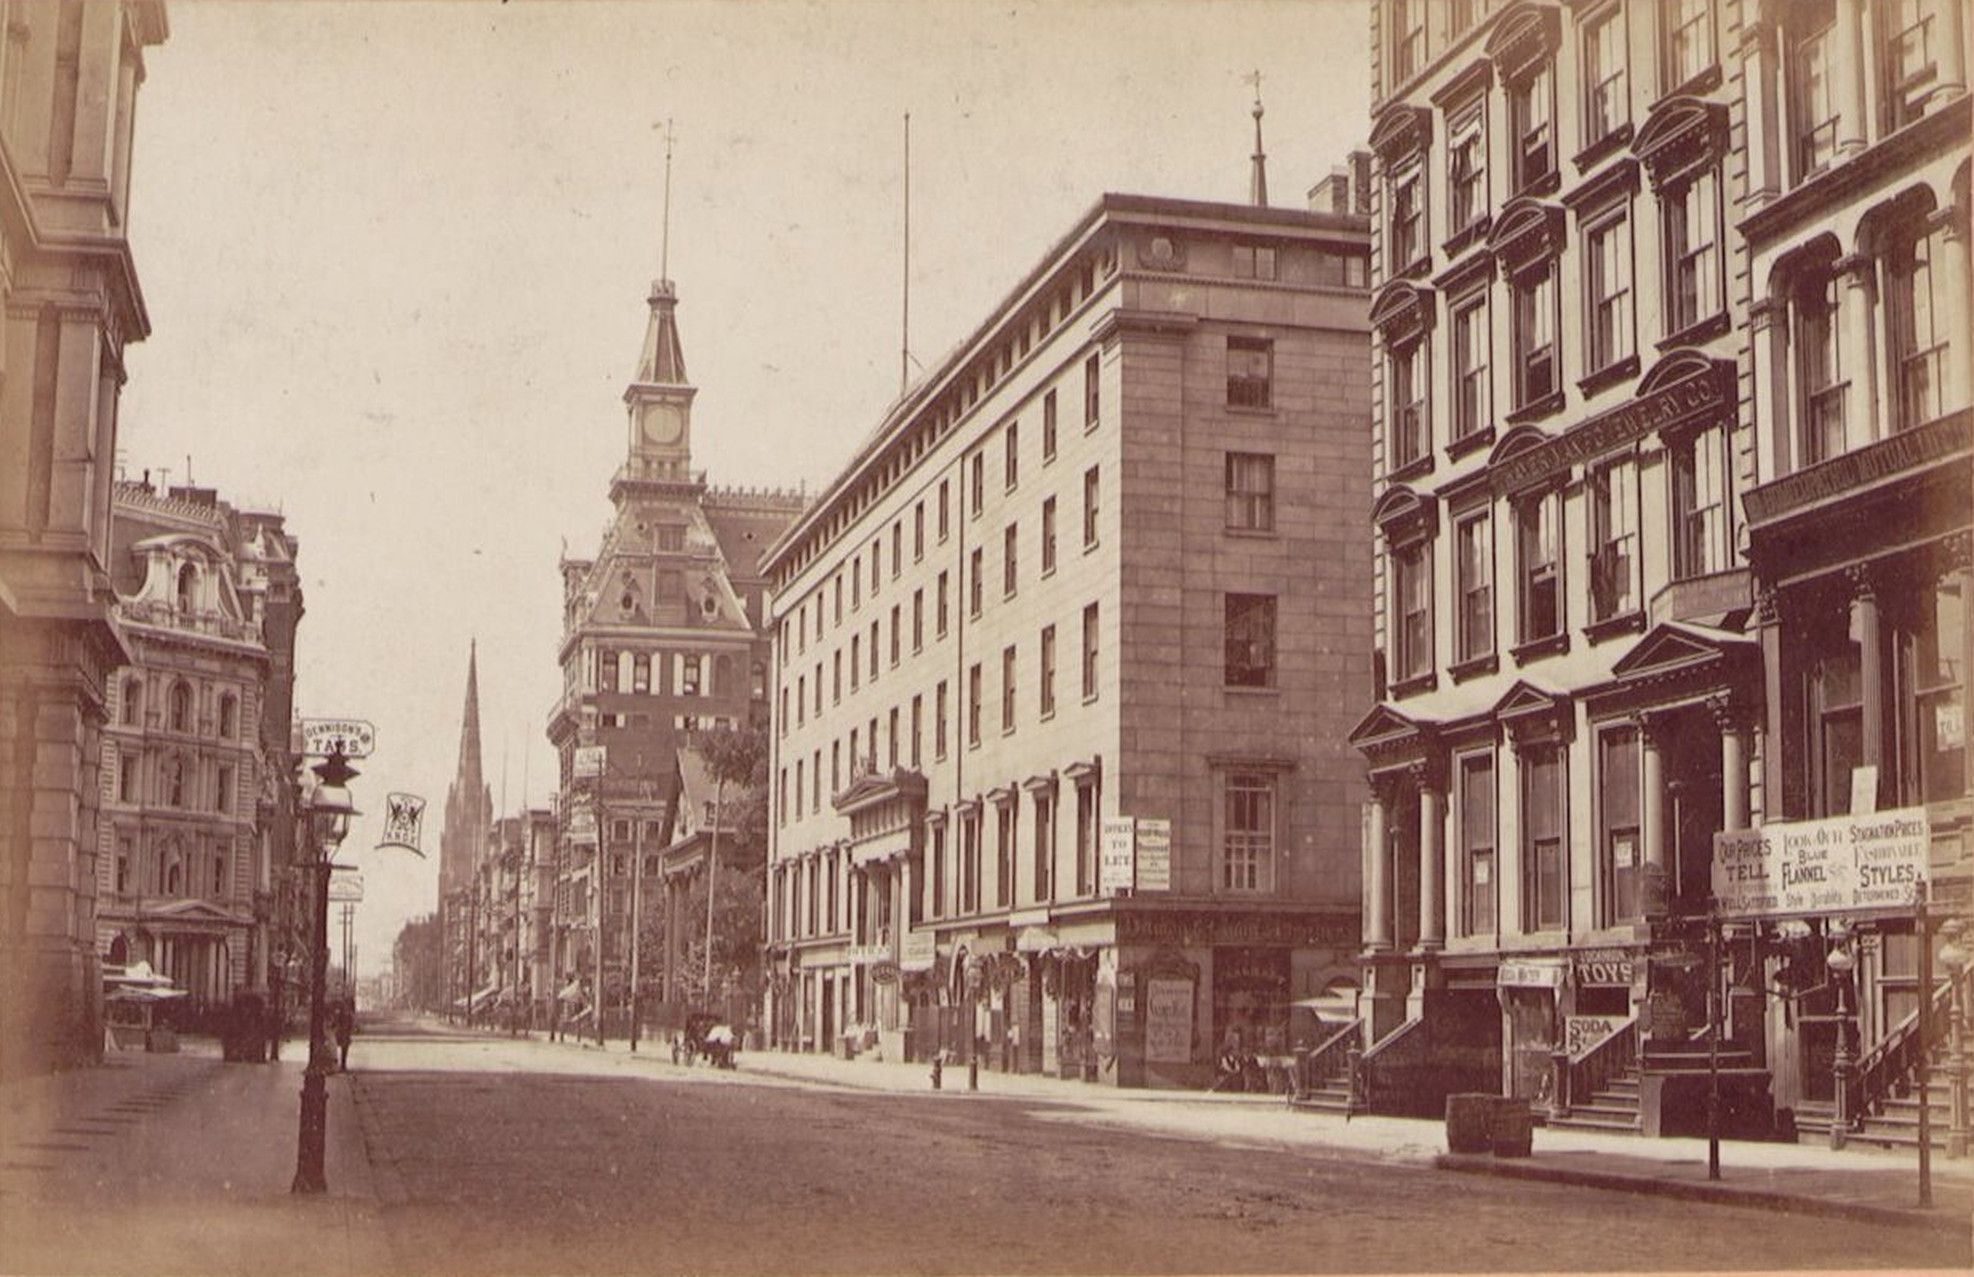 Broadway looking South Astor House 1875 publisher Thorne